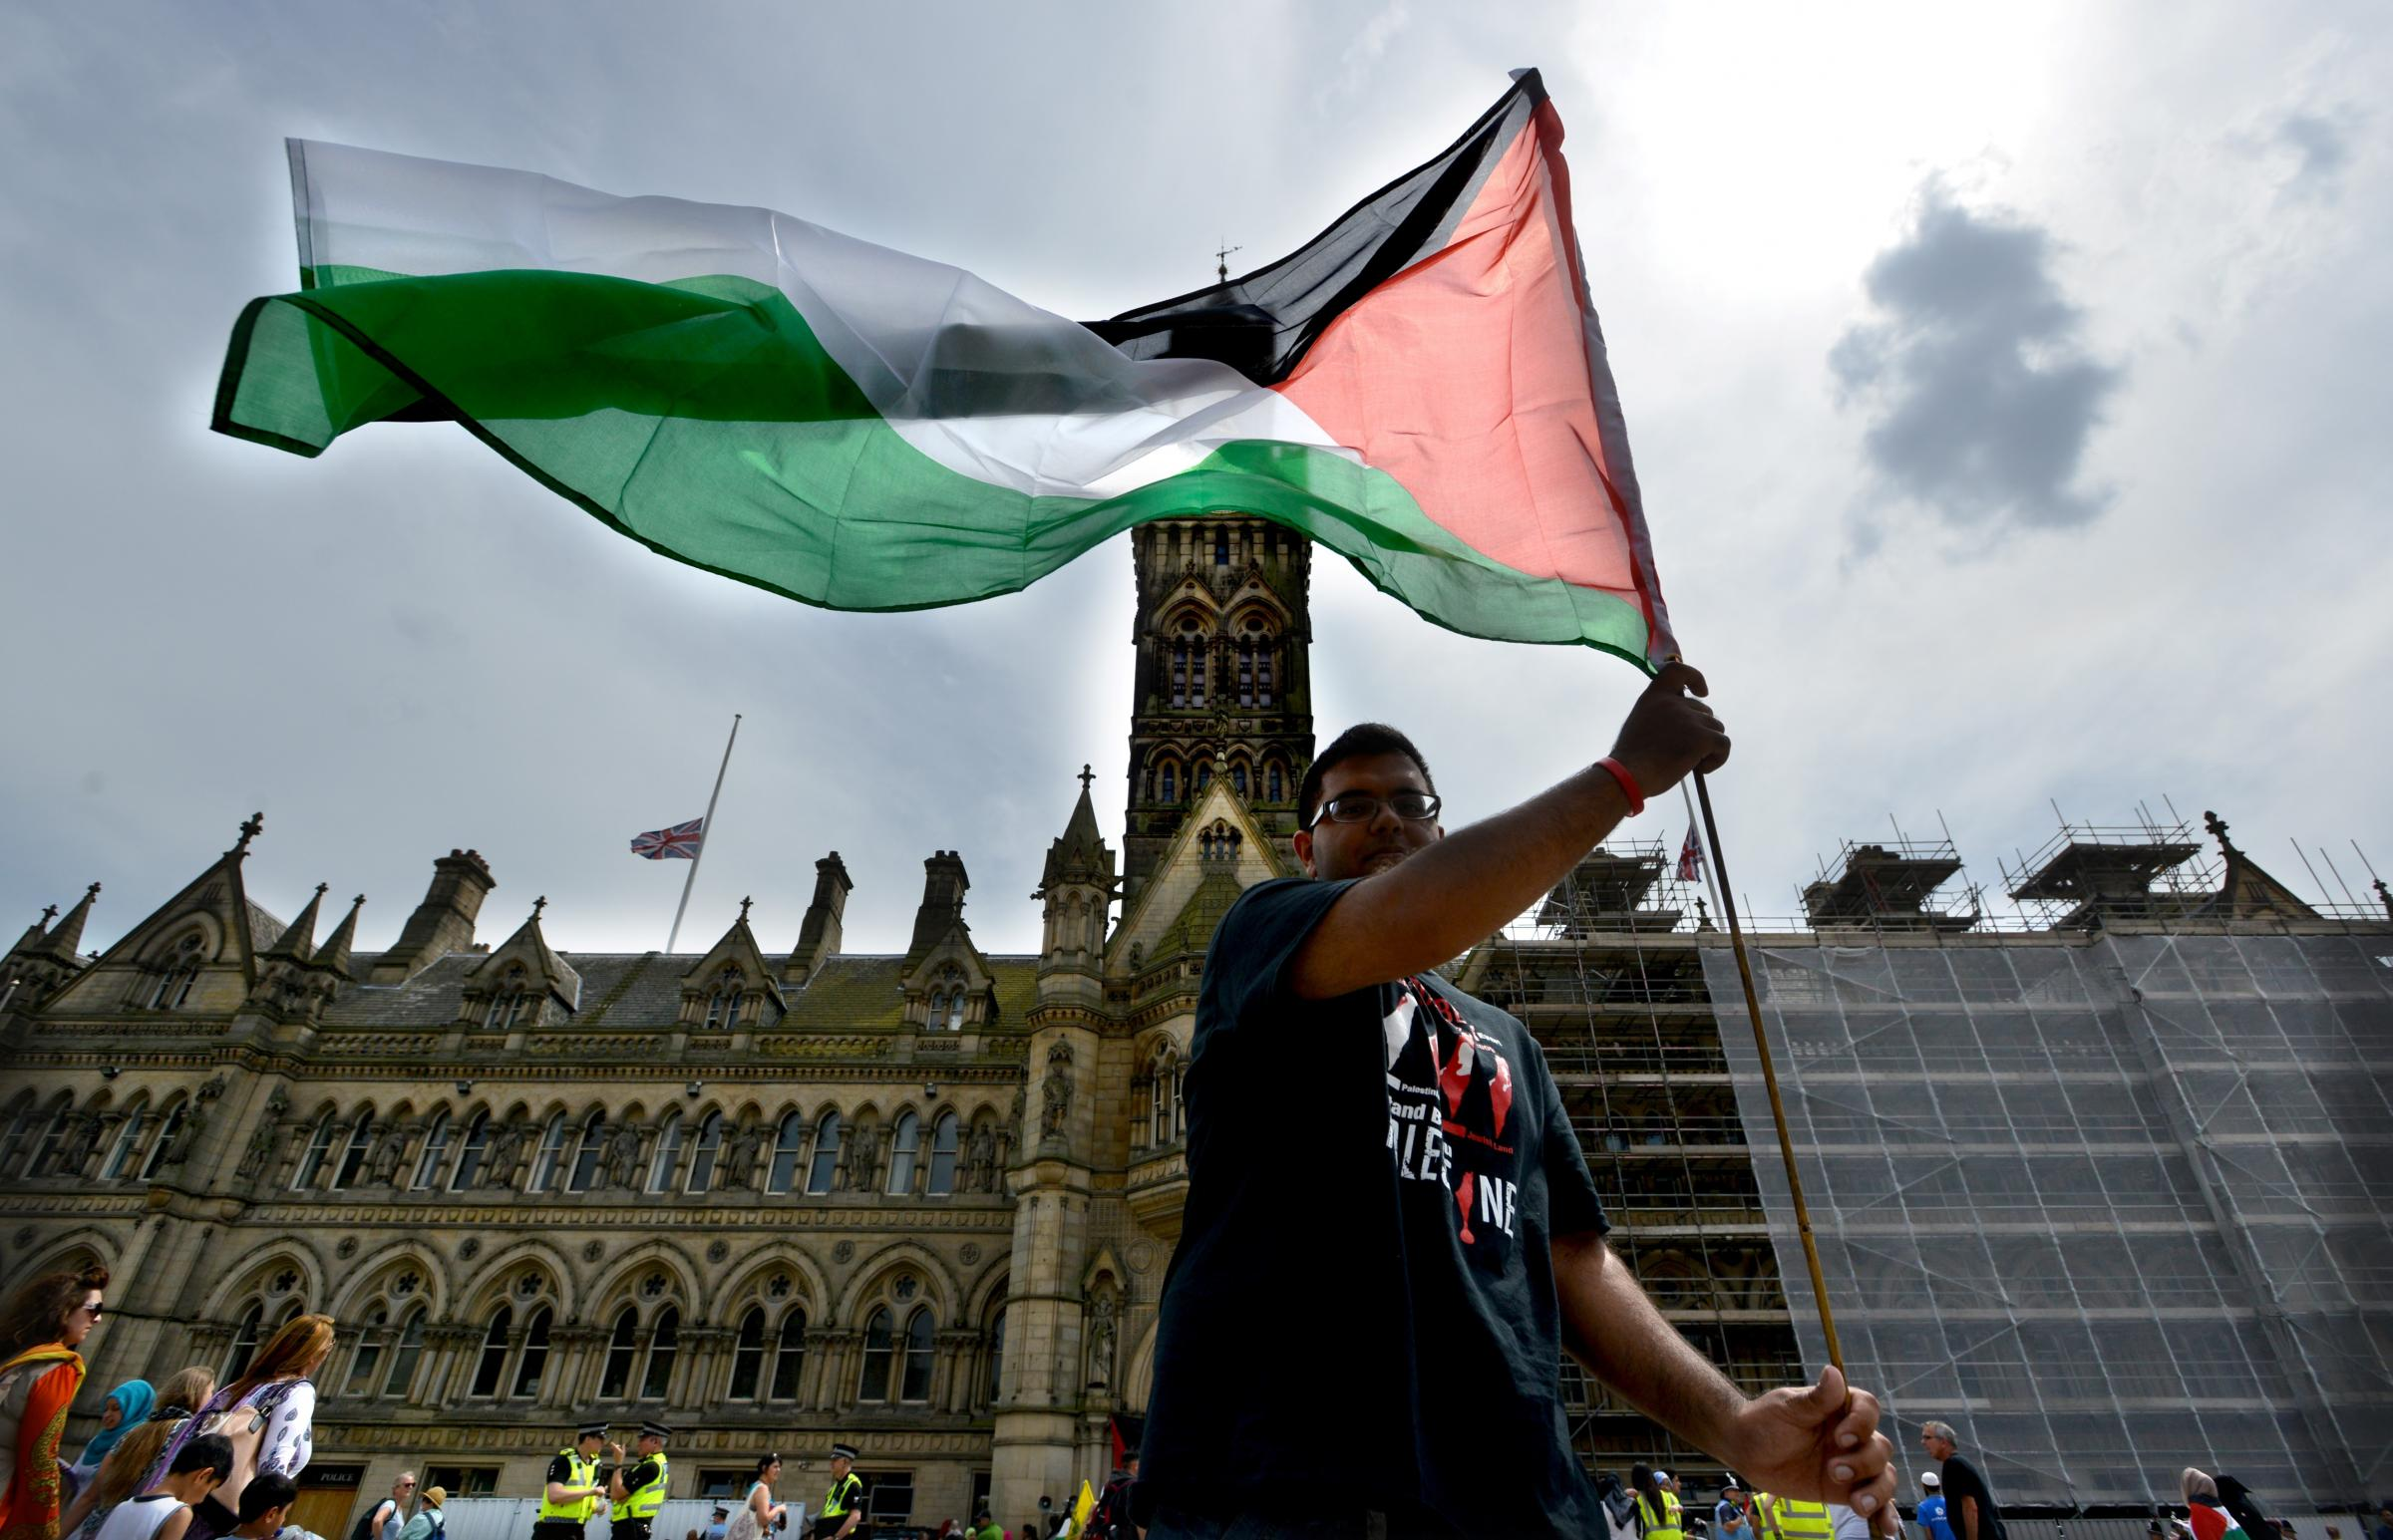 Political groups divided by call to fly Israeli flag outside Bradford City Hall